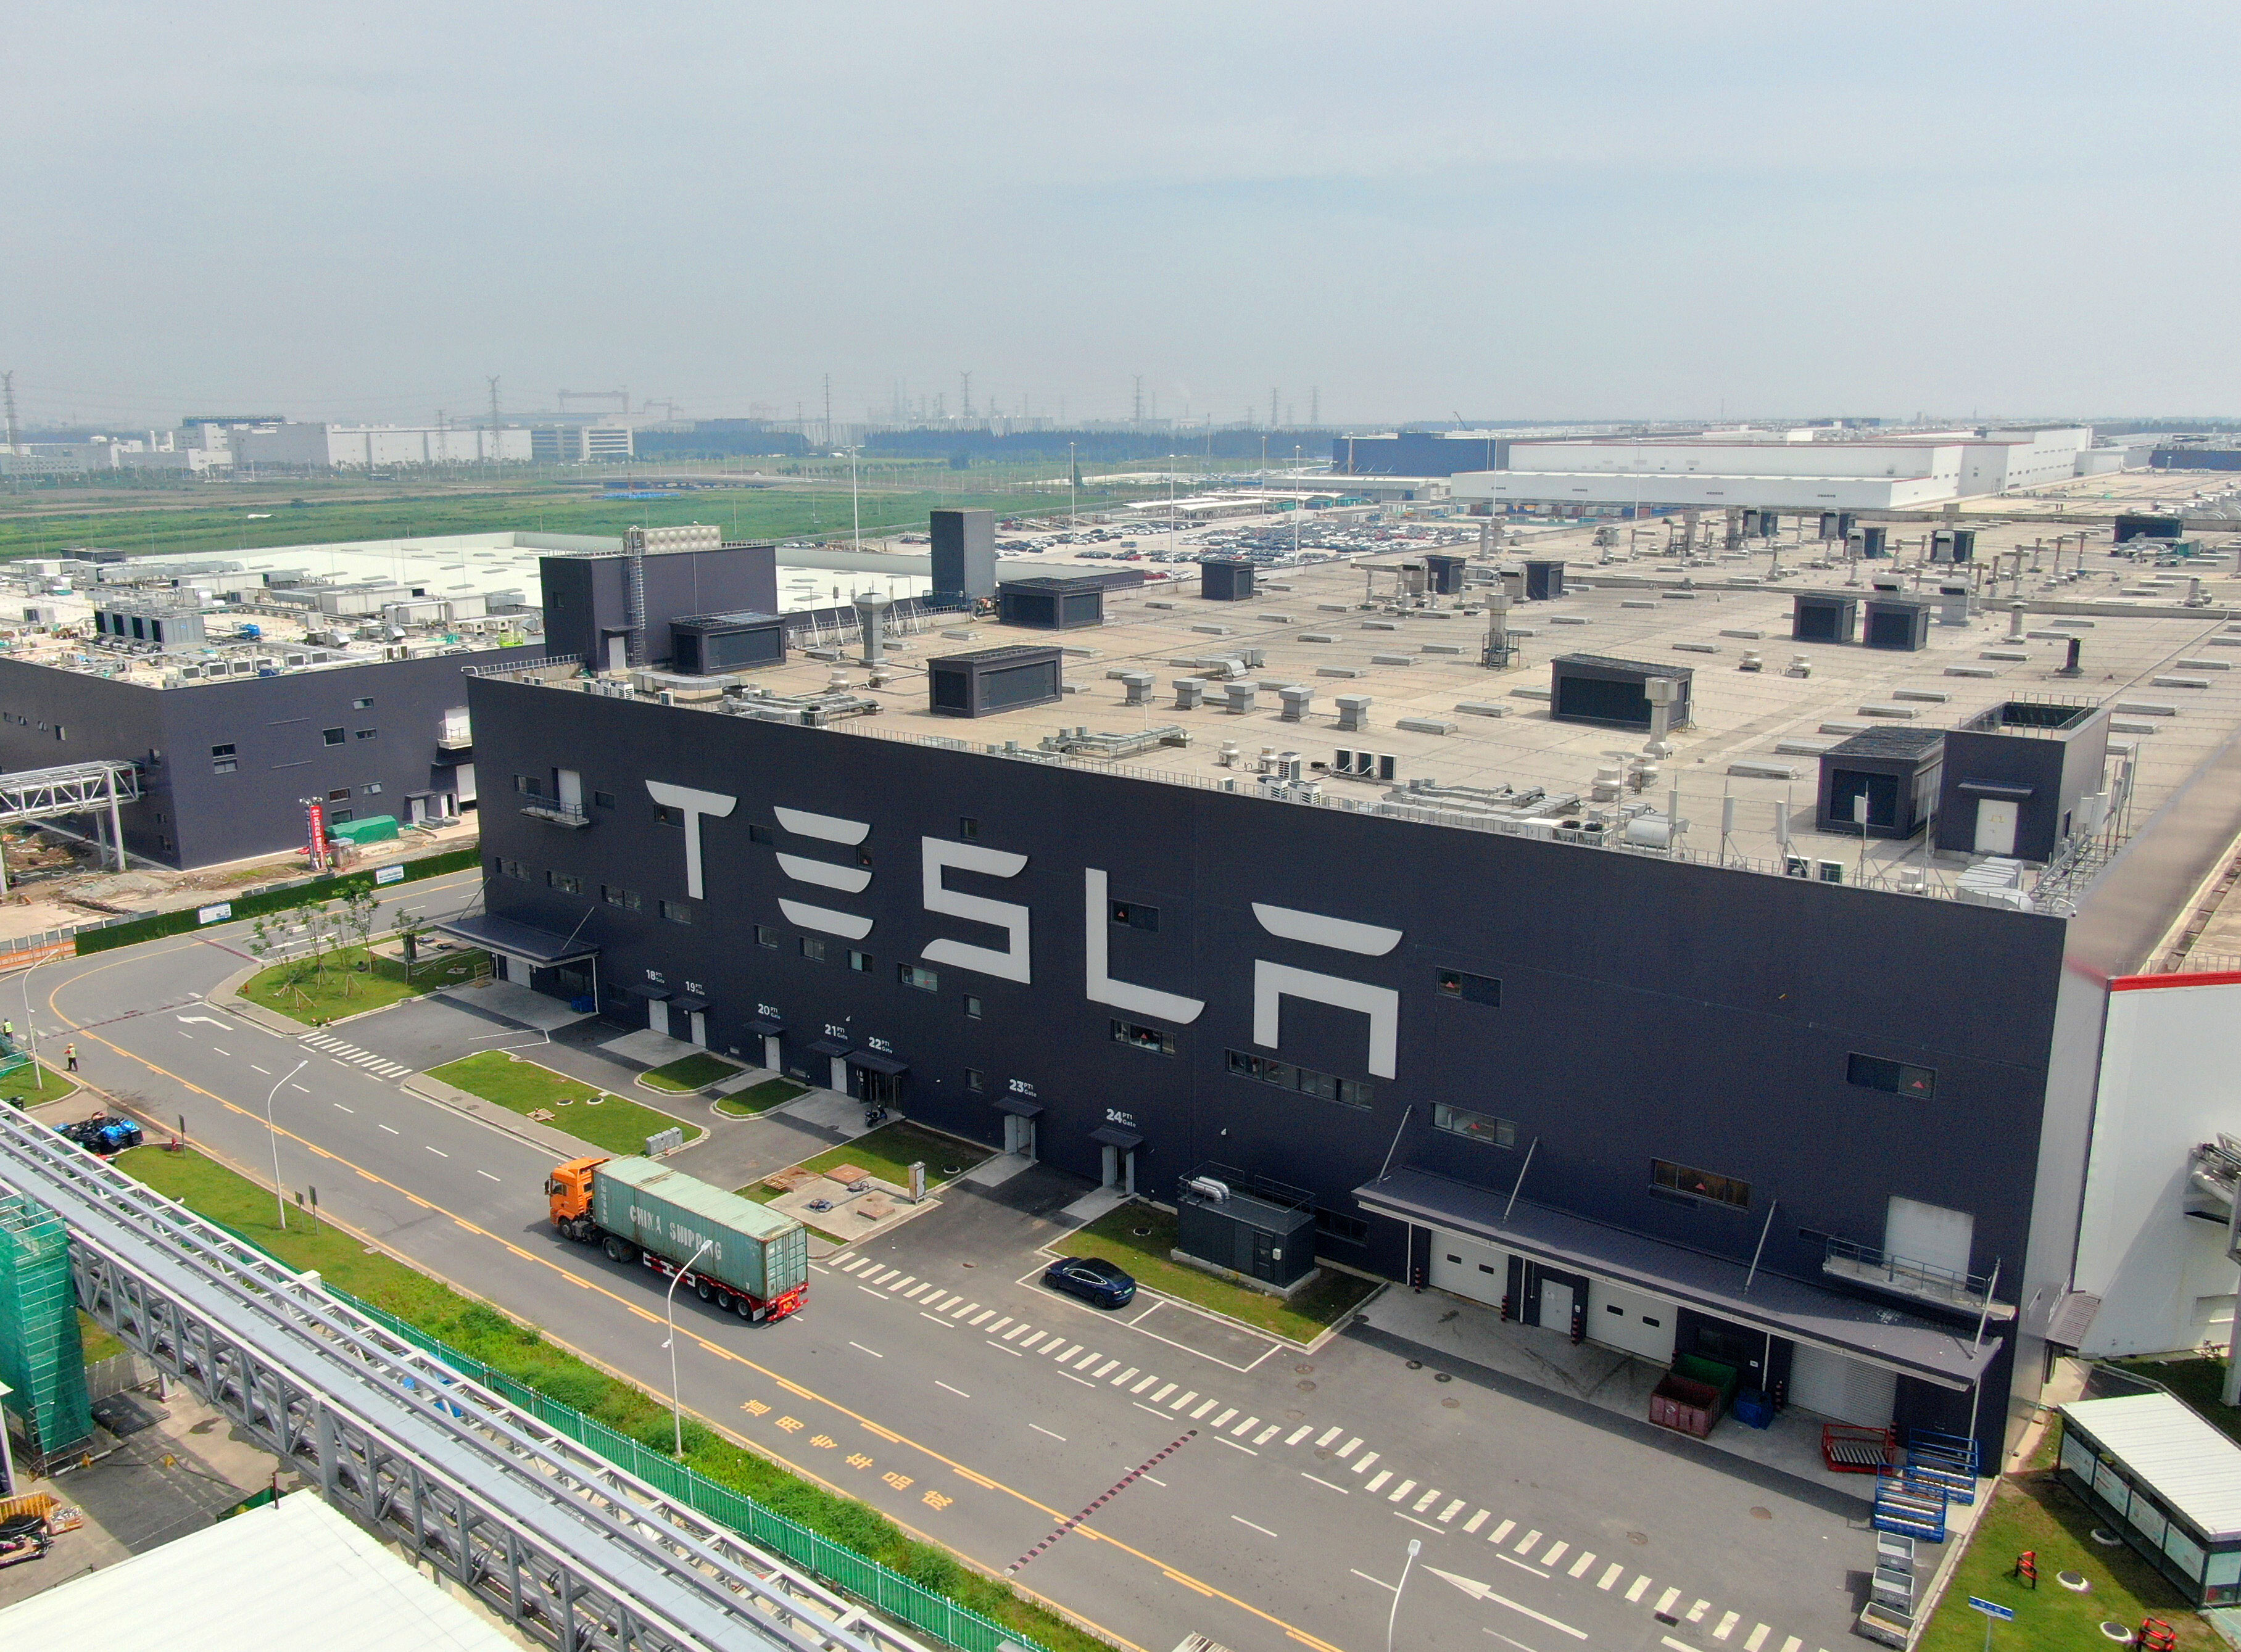 Tesla sales cratered in China, but investors don't seem to mind